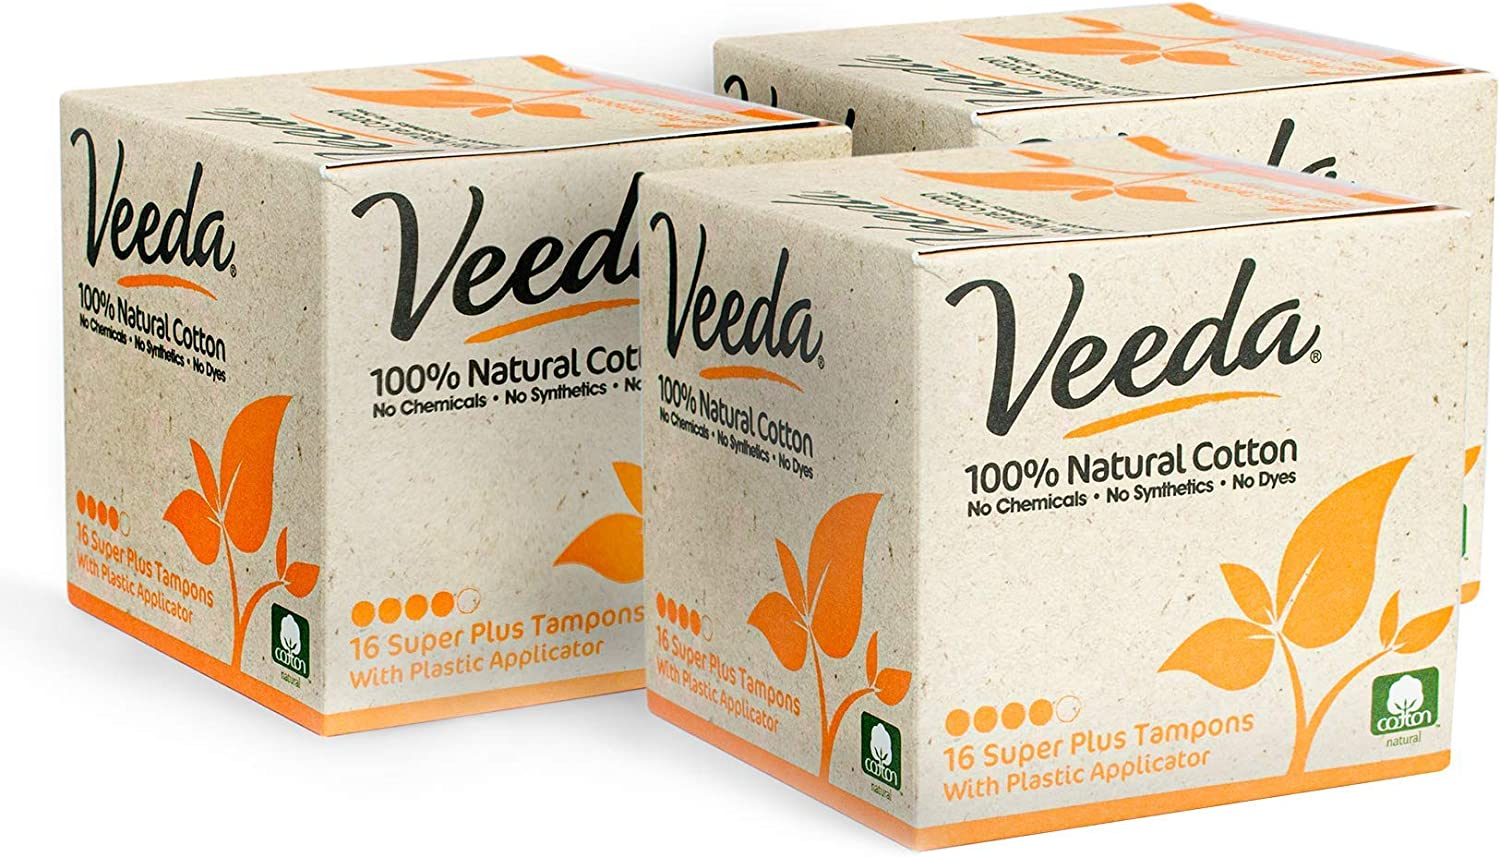 Veeda 100% Natural Cotton Compact BPA-Free Applicator Tampons Chlorine, Toxin and Pesticide Free, Super Plus, 3 Boxes of 16 Count Each